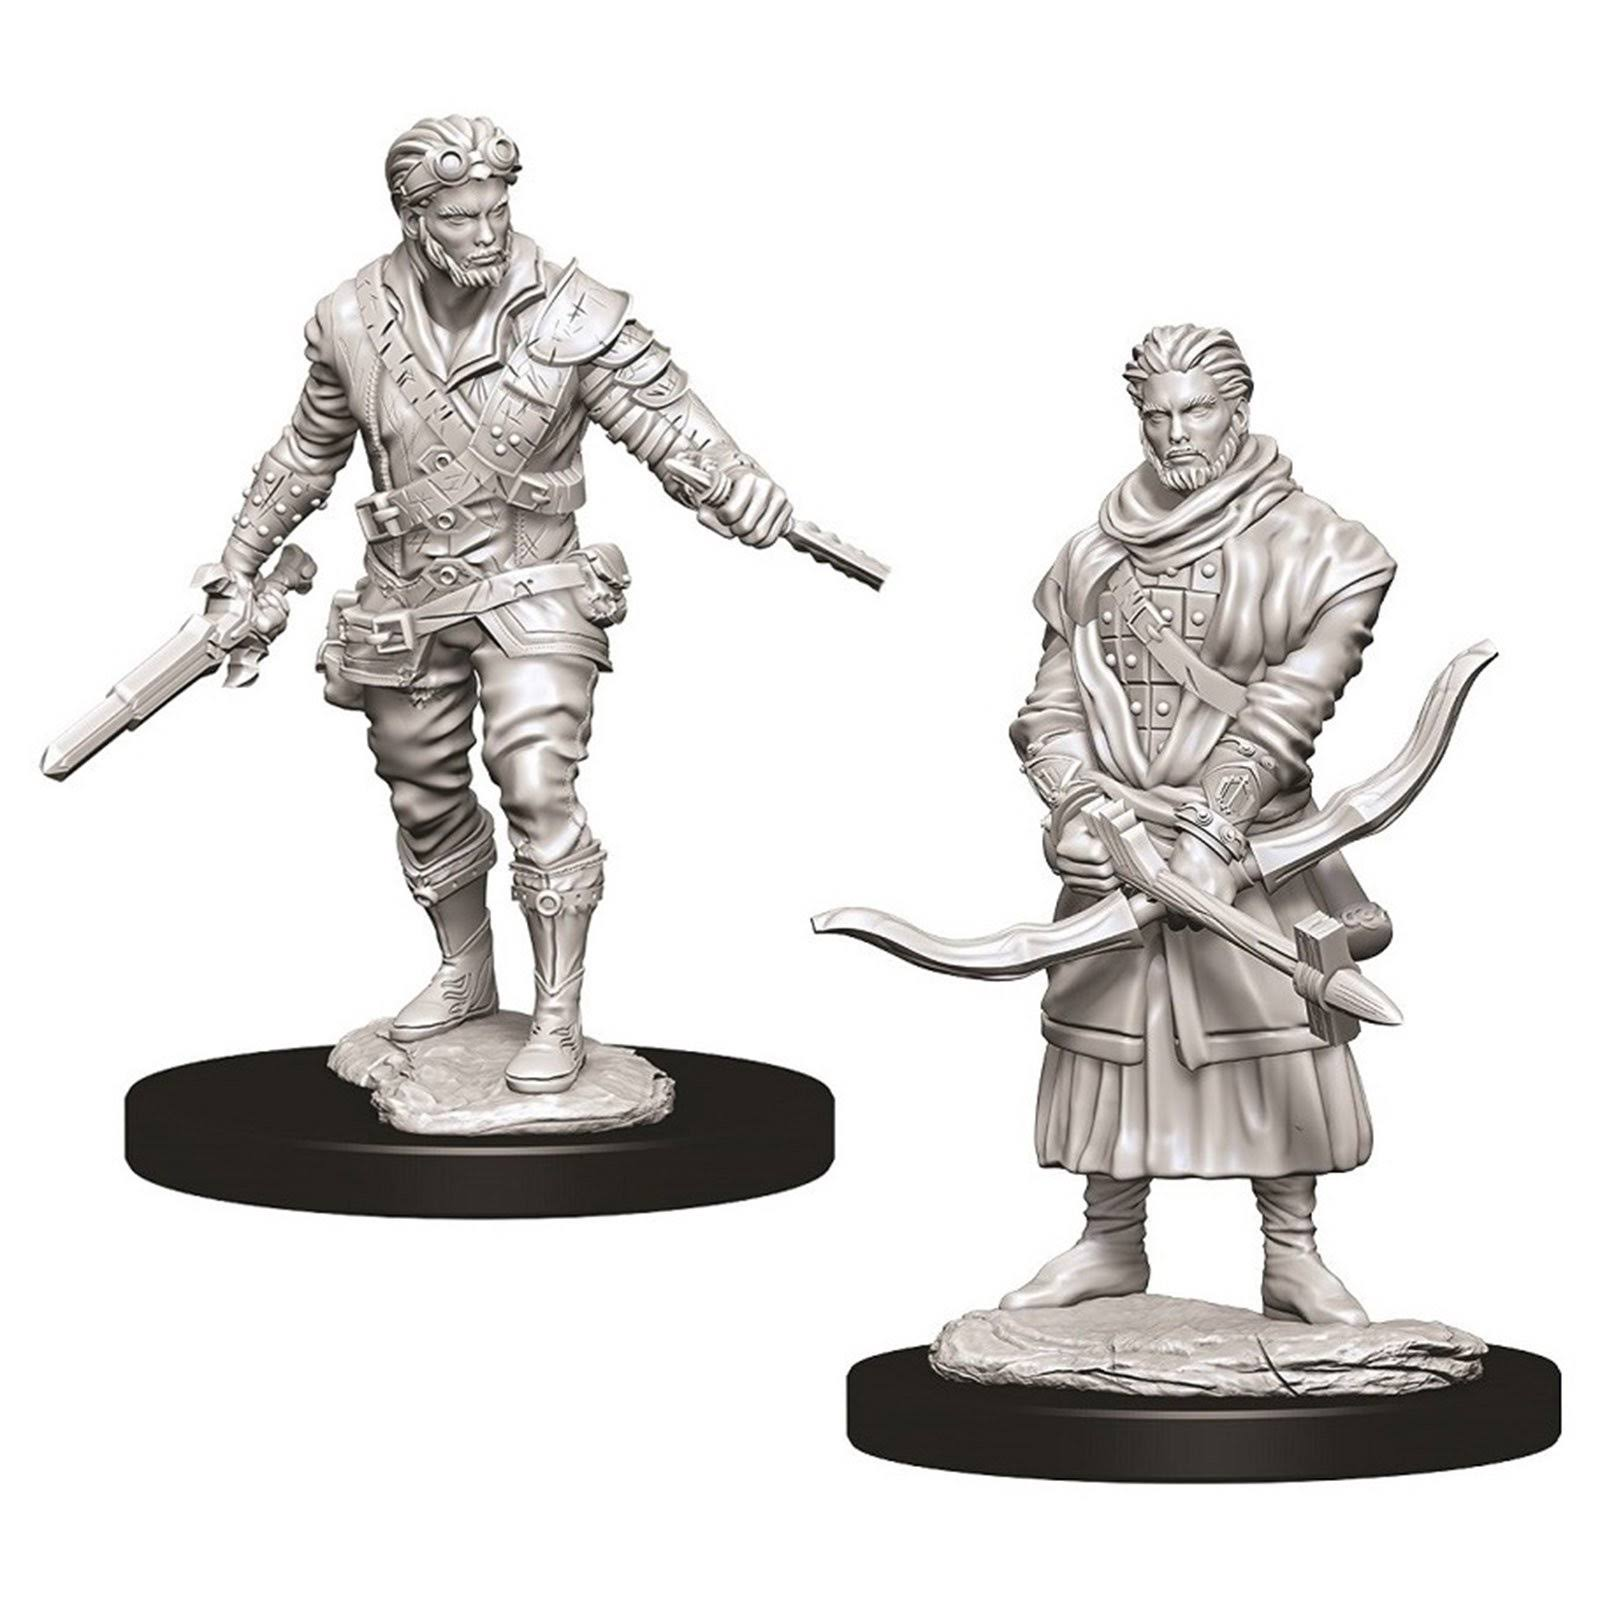 Dungeons and Dragons - Nolzur's Marvelous Unpainted Minis: Unpainted Male Human Rogue Miniature